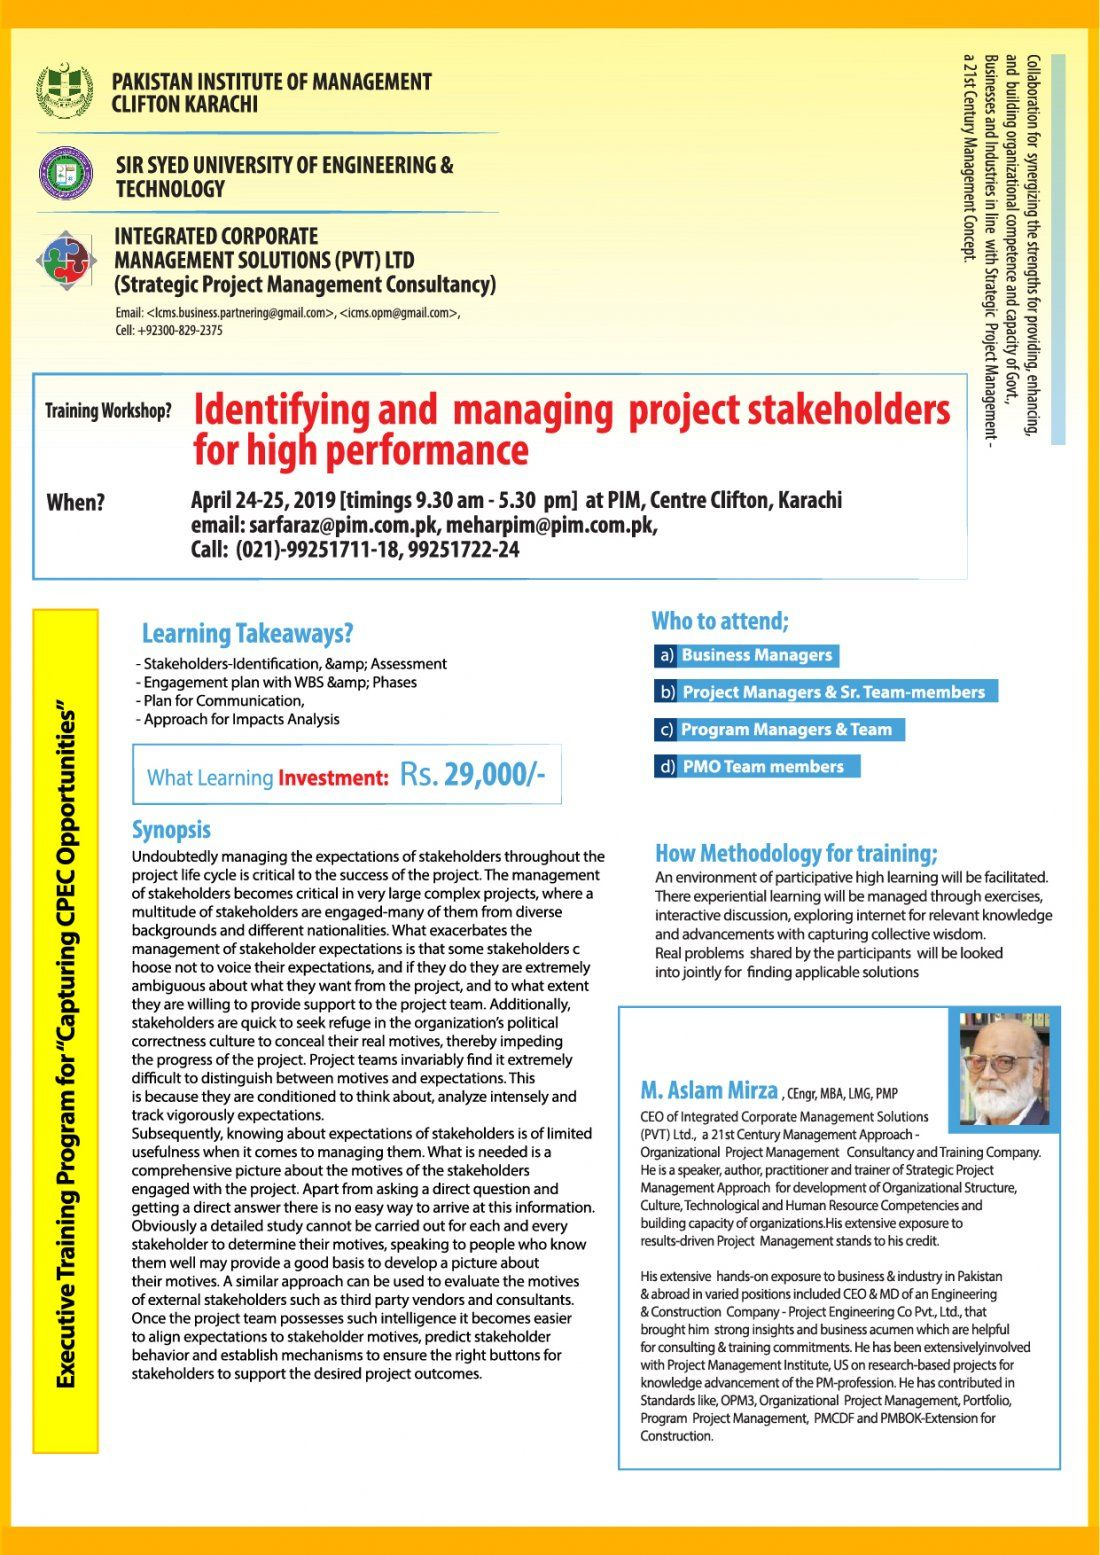 Training Workshop - Identifying and Managing Project Stakeholders for High Performance